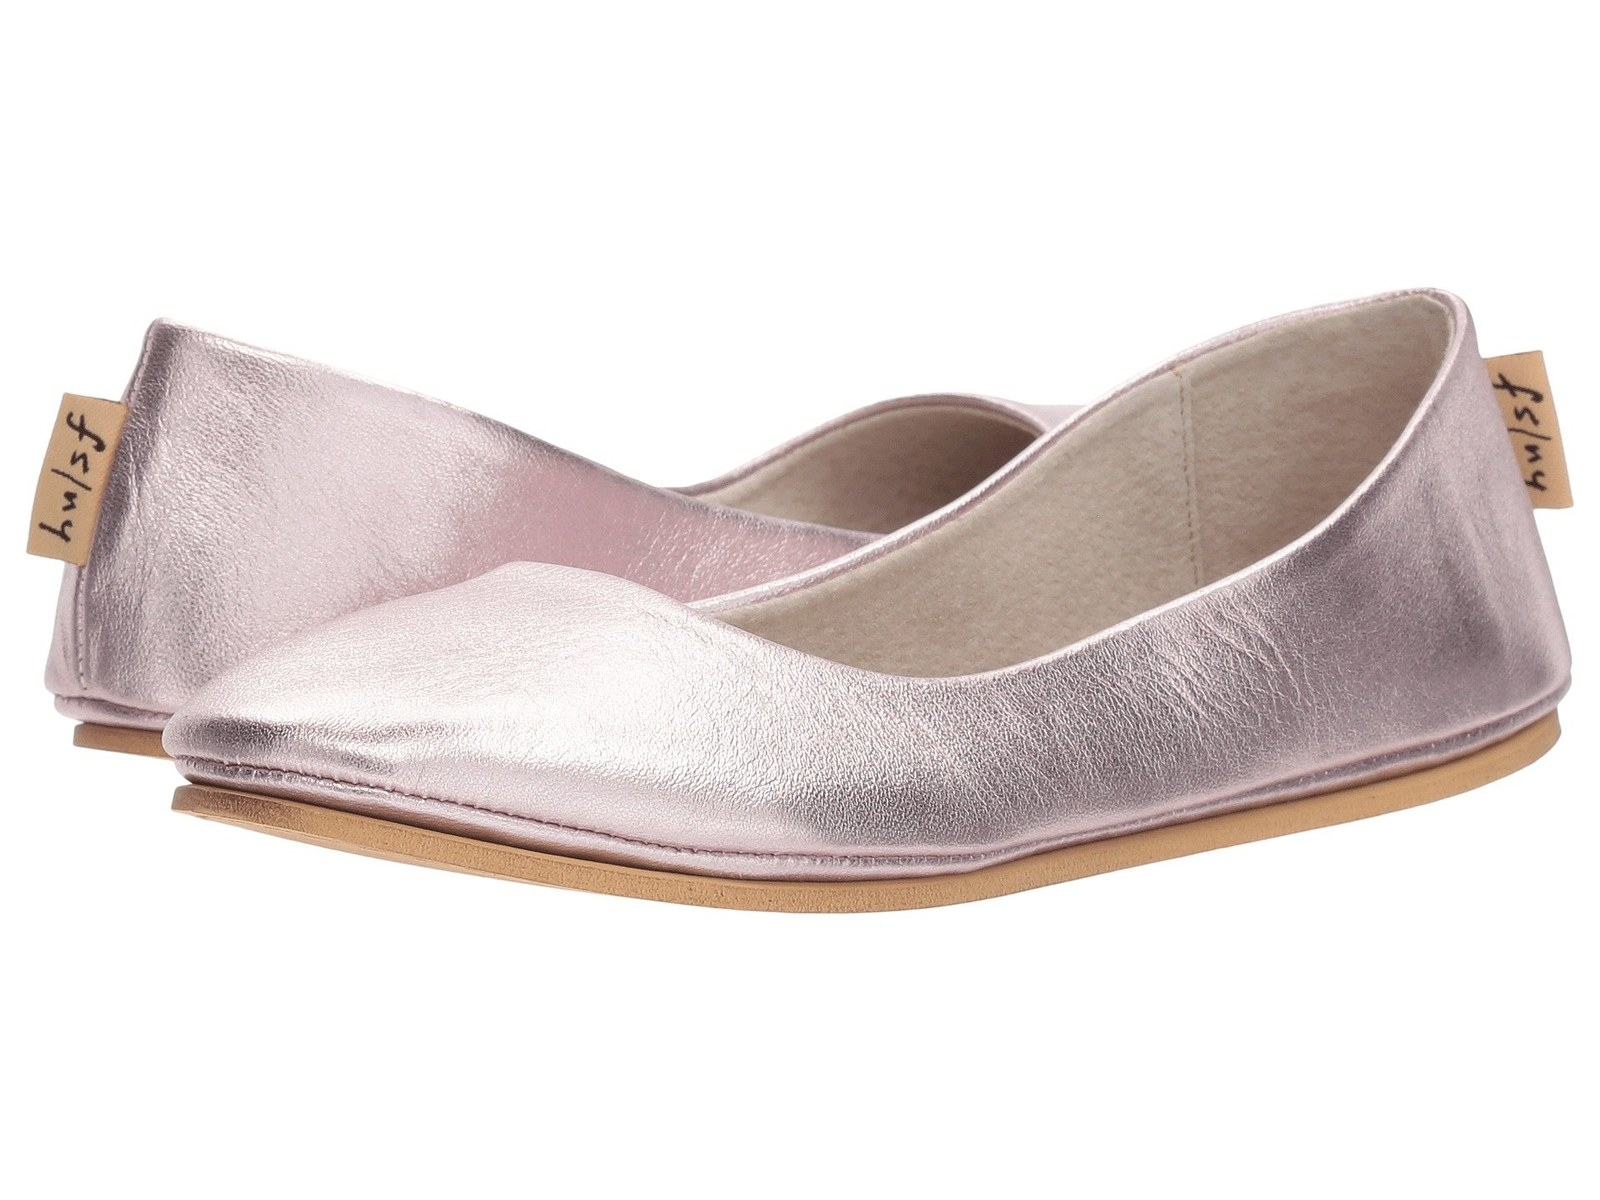 7540e1203ad Ballet flats that will make you feel like an actual ballet dancer (even if  your physical genius is currently unrecognized).